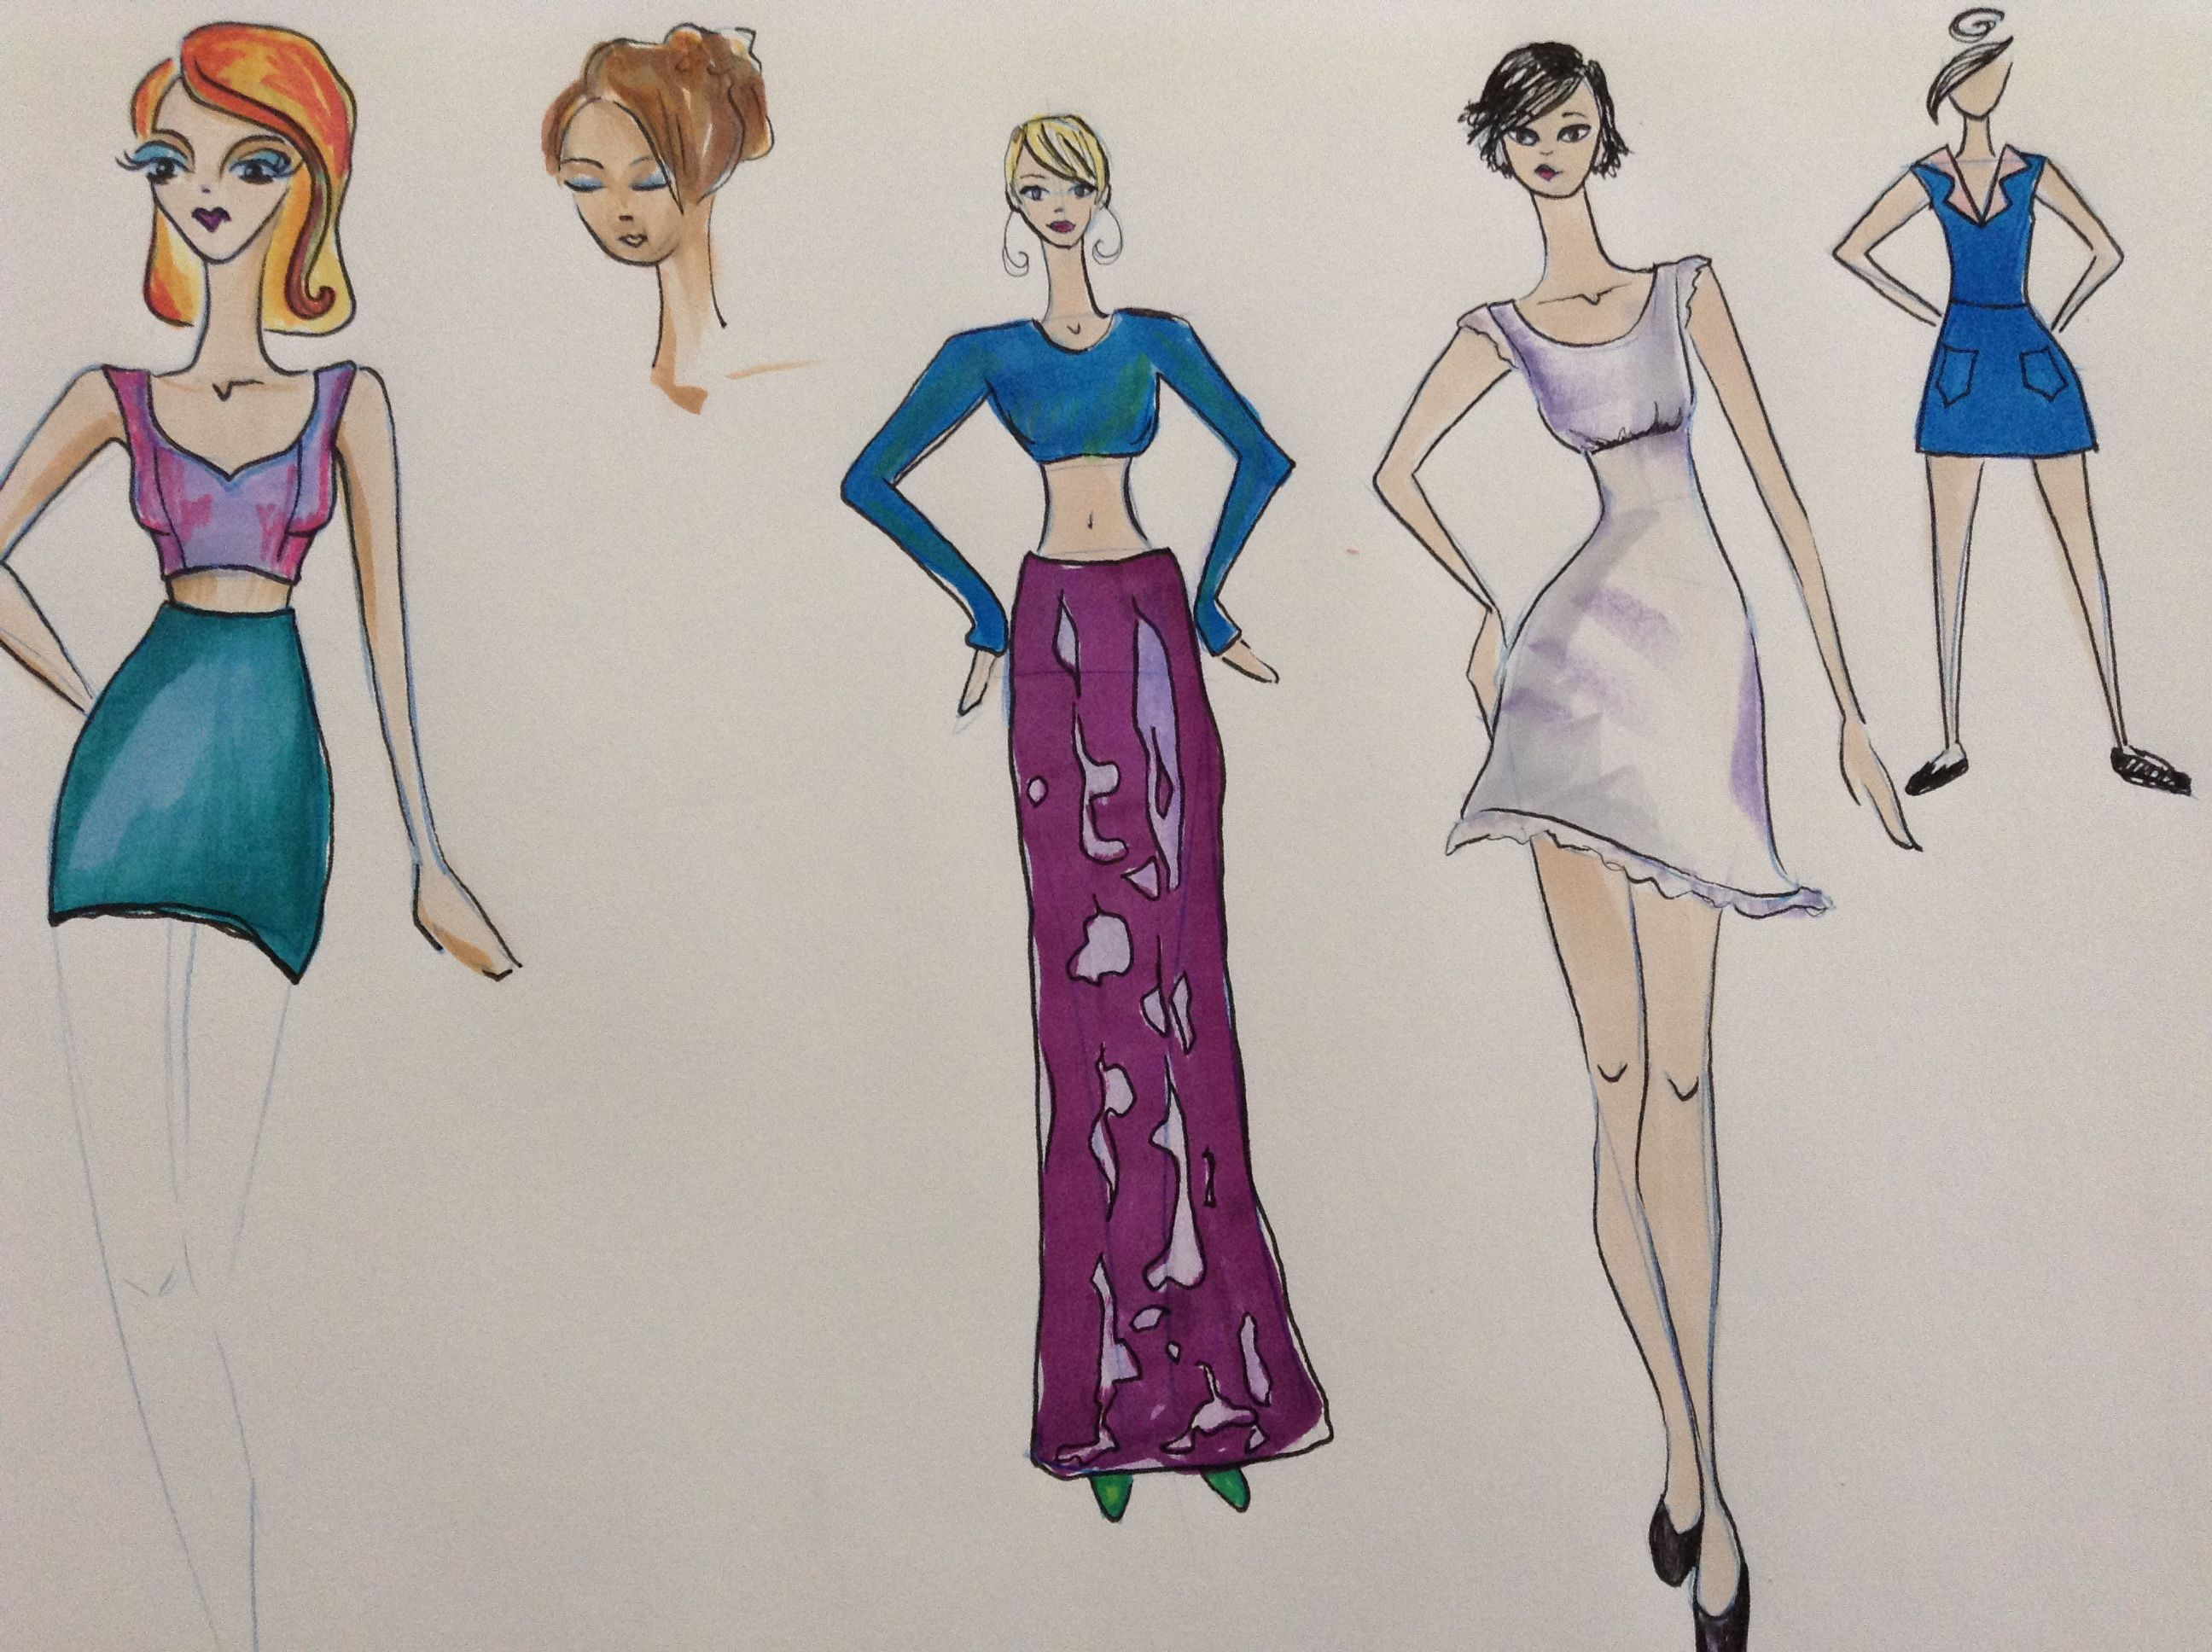 Sketches by Kelsey Lovelle.